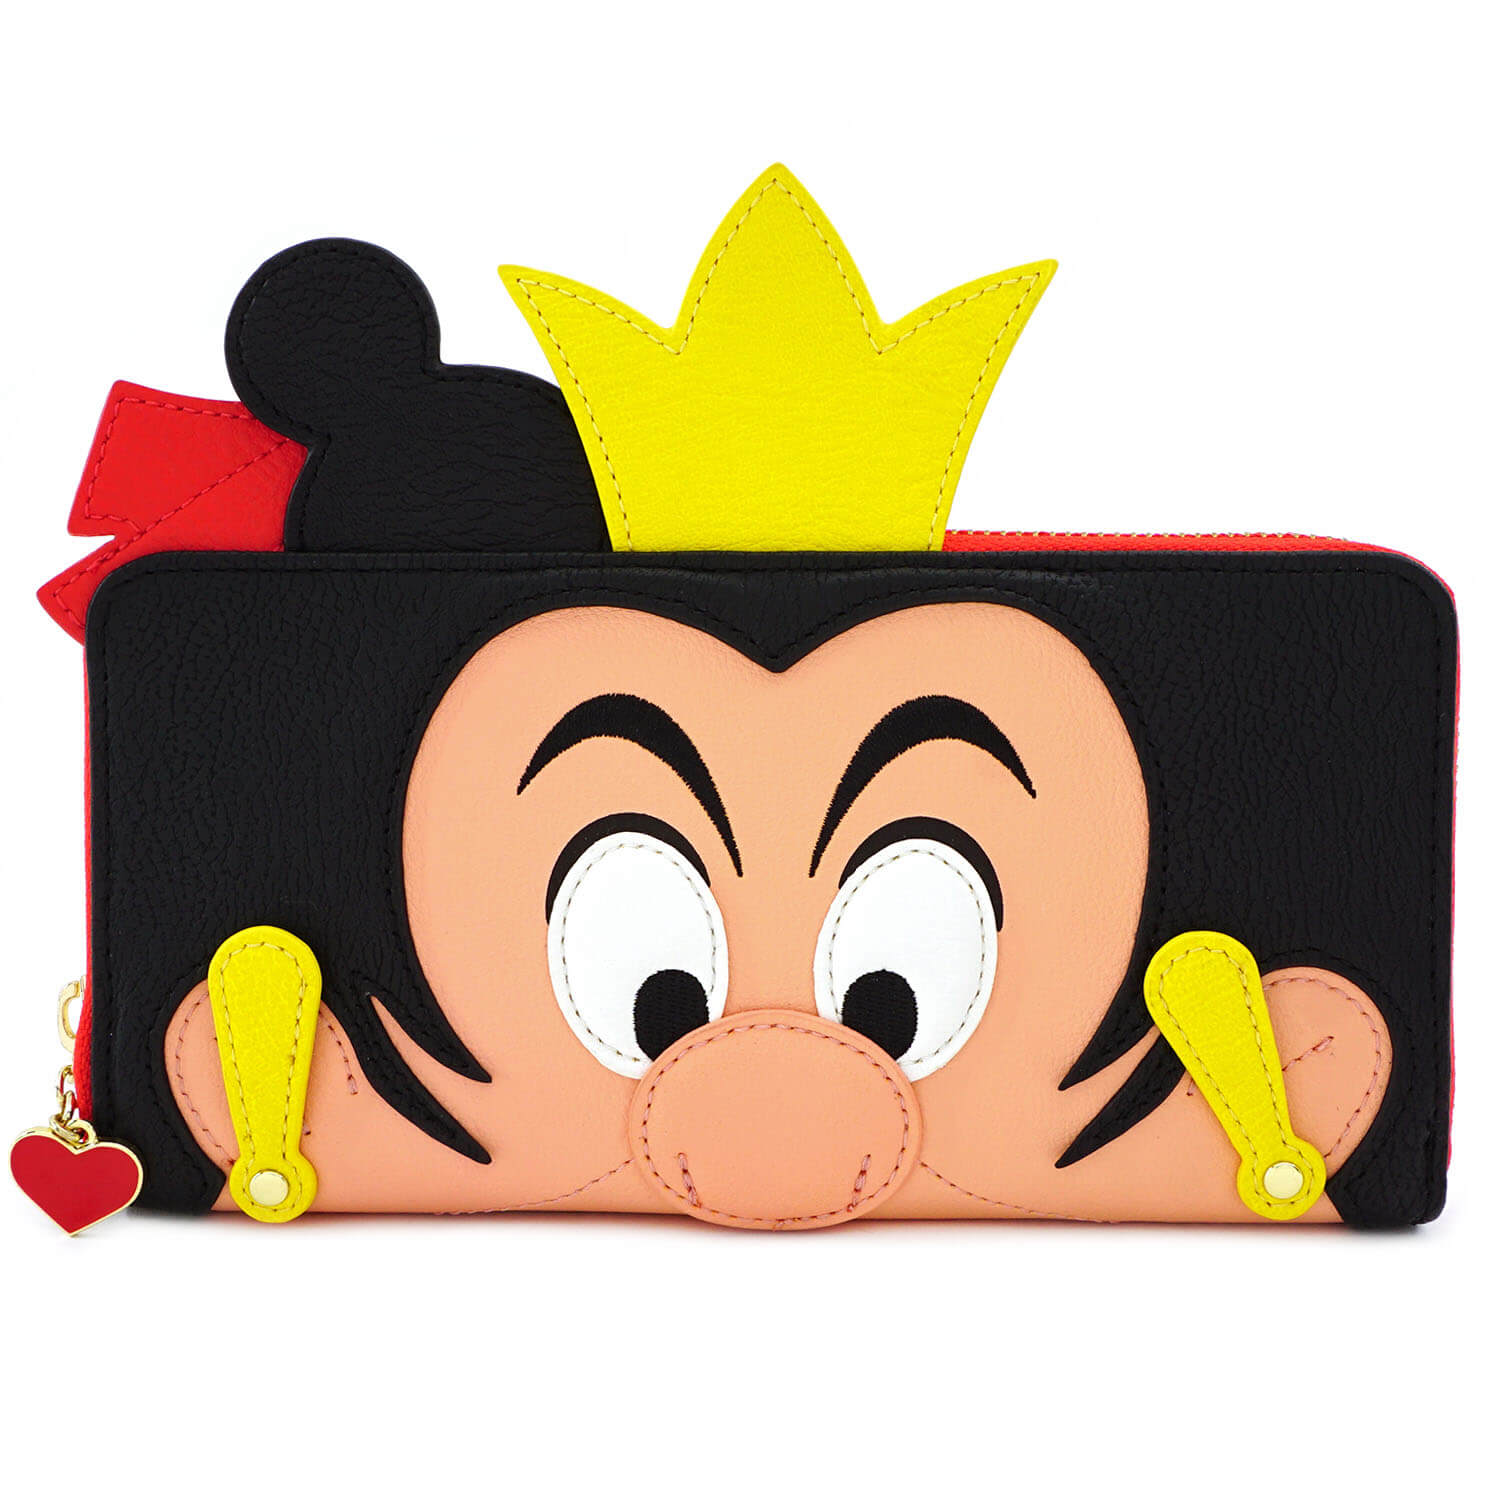 Image of Loungefly Disney Queen Of Hearts Faux Leather Zip Around Purse